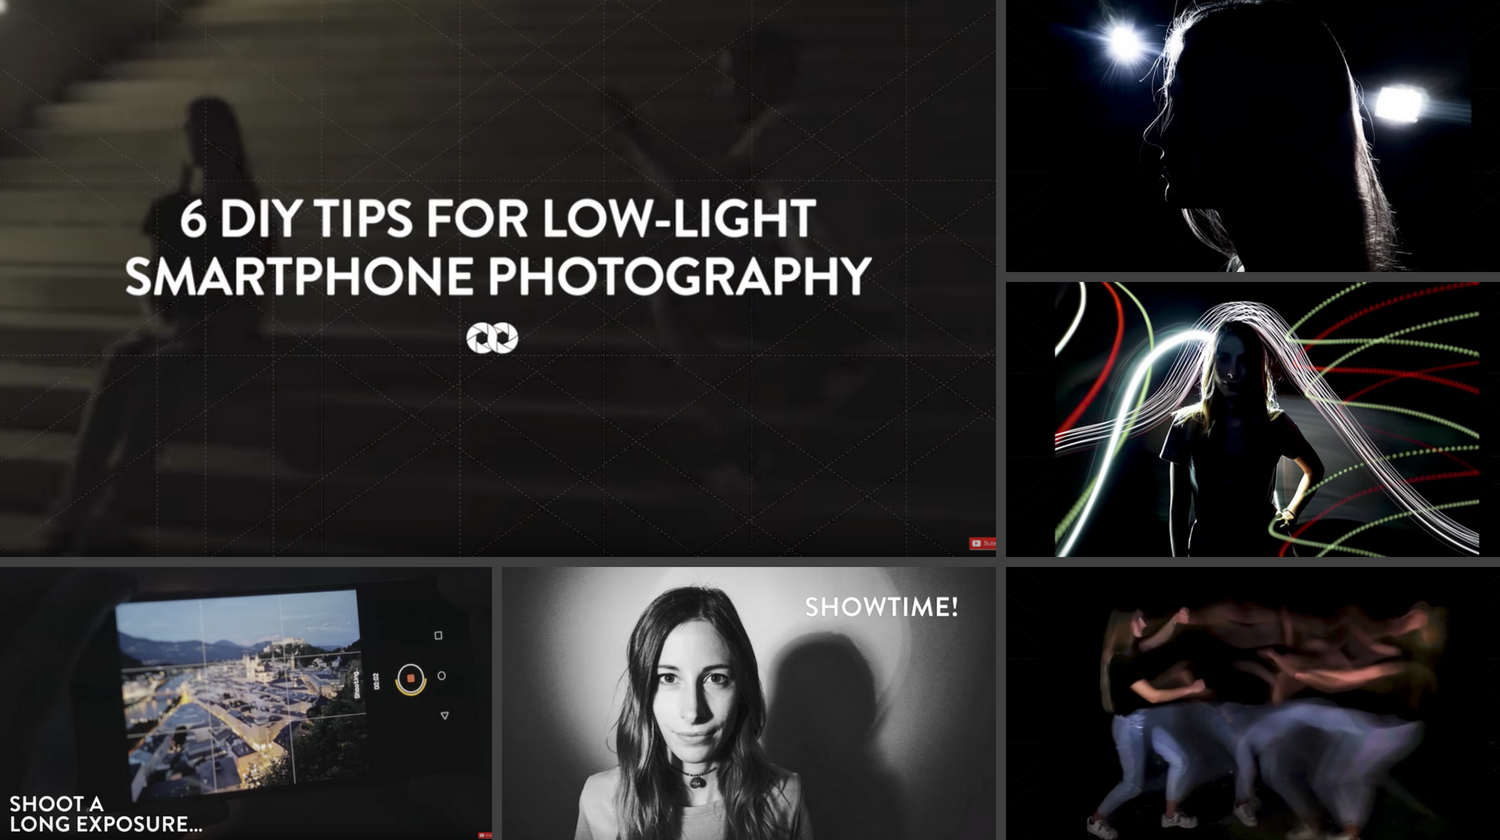 6 Quick Tips for Low Light Smartphone Photography